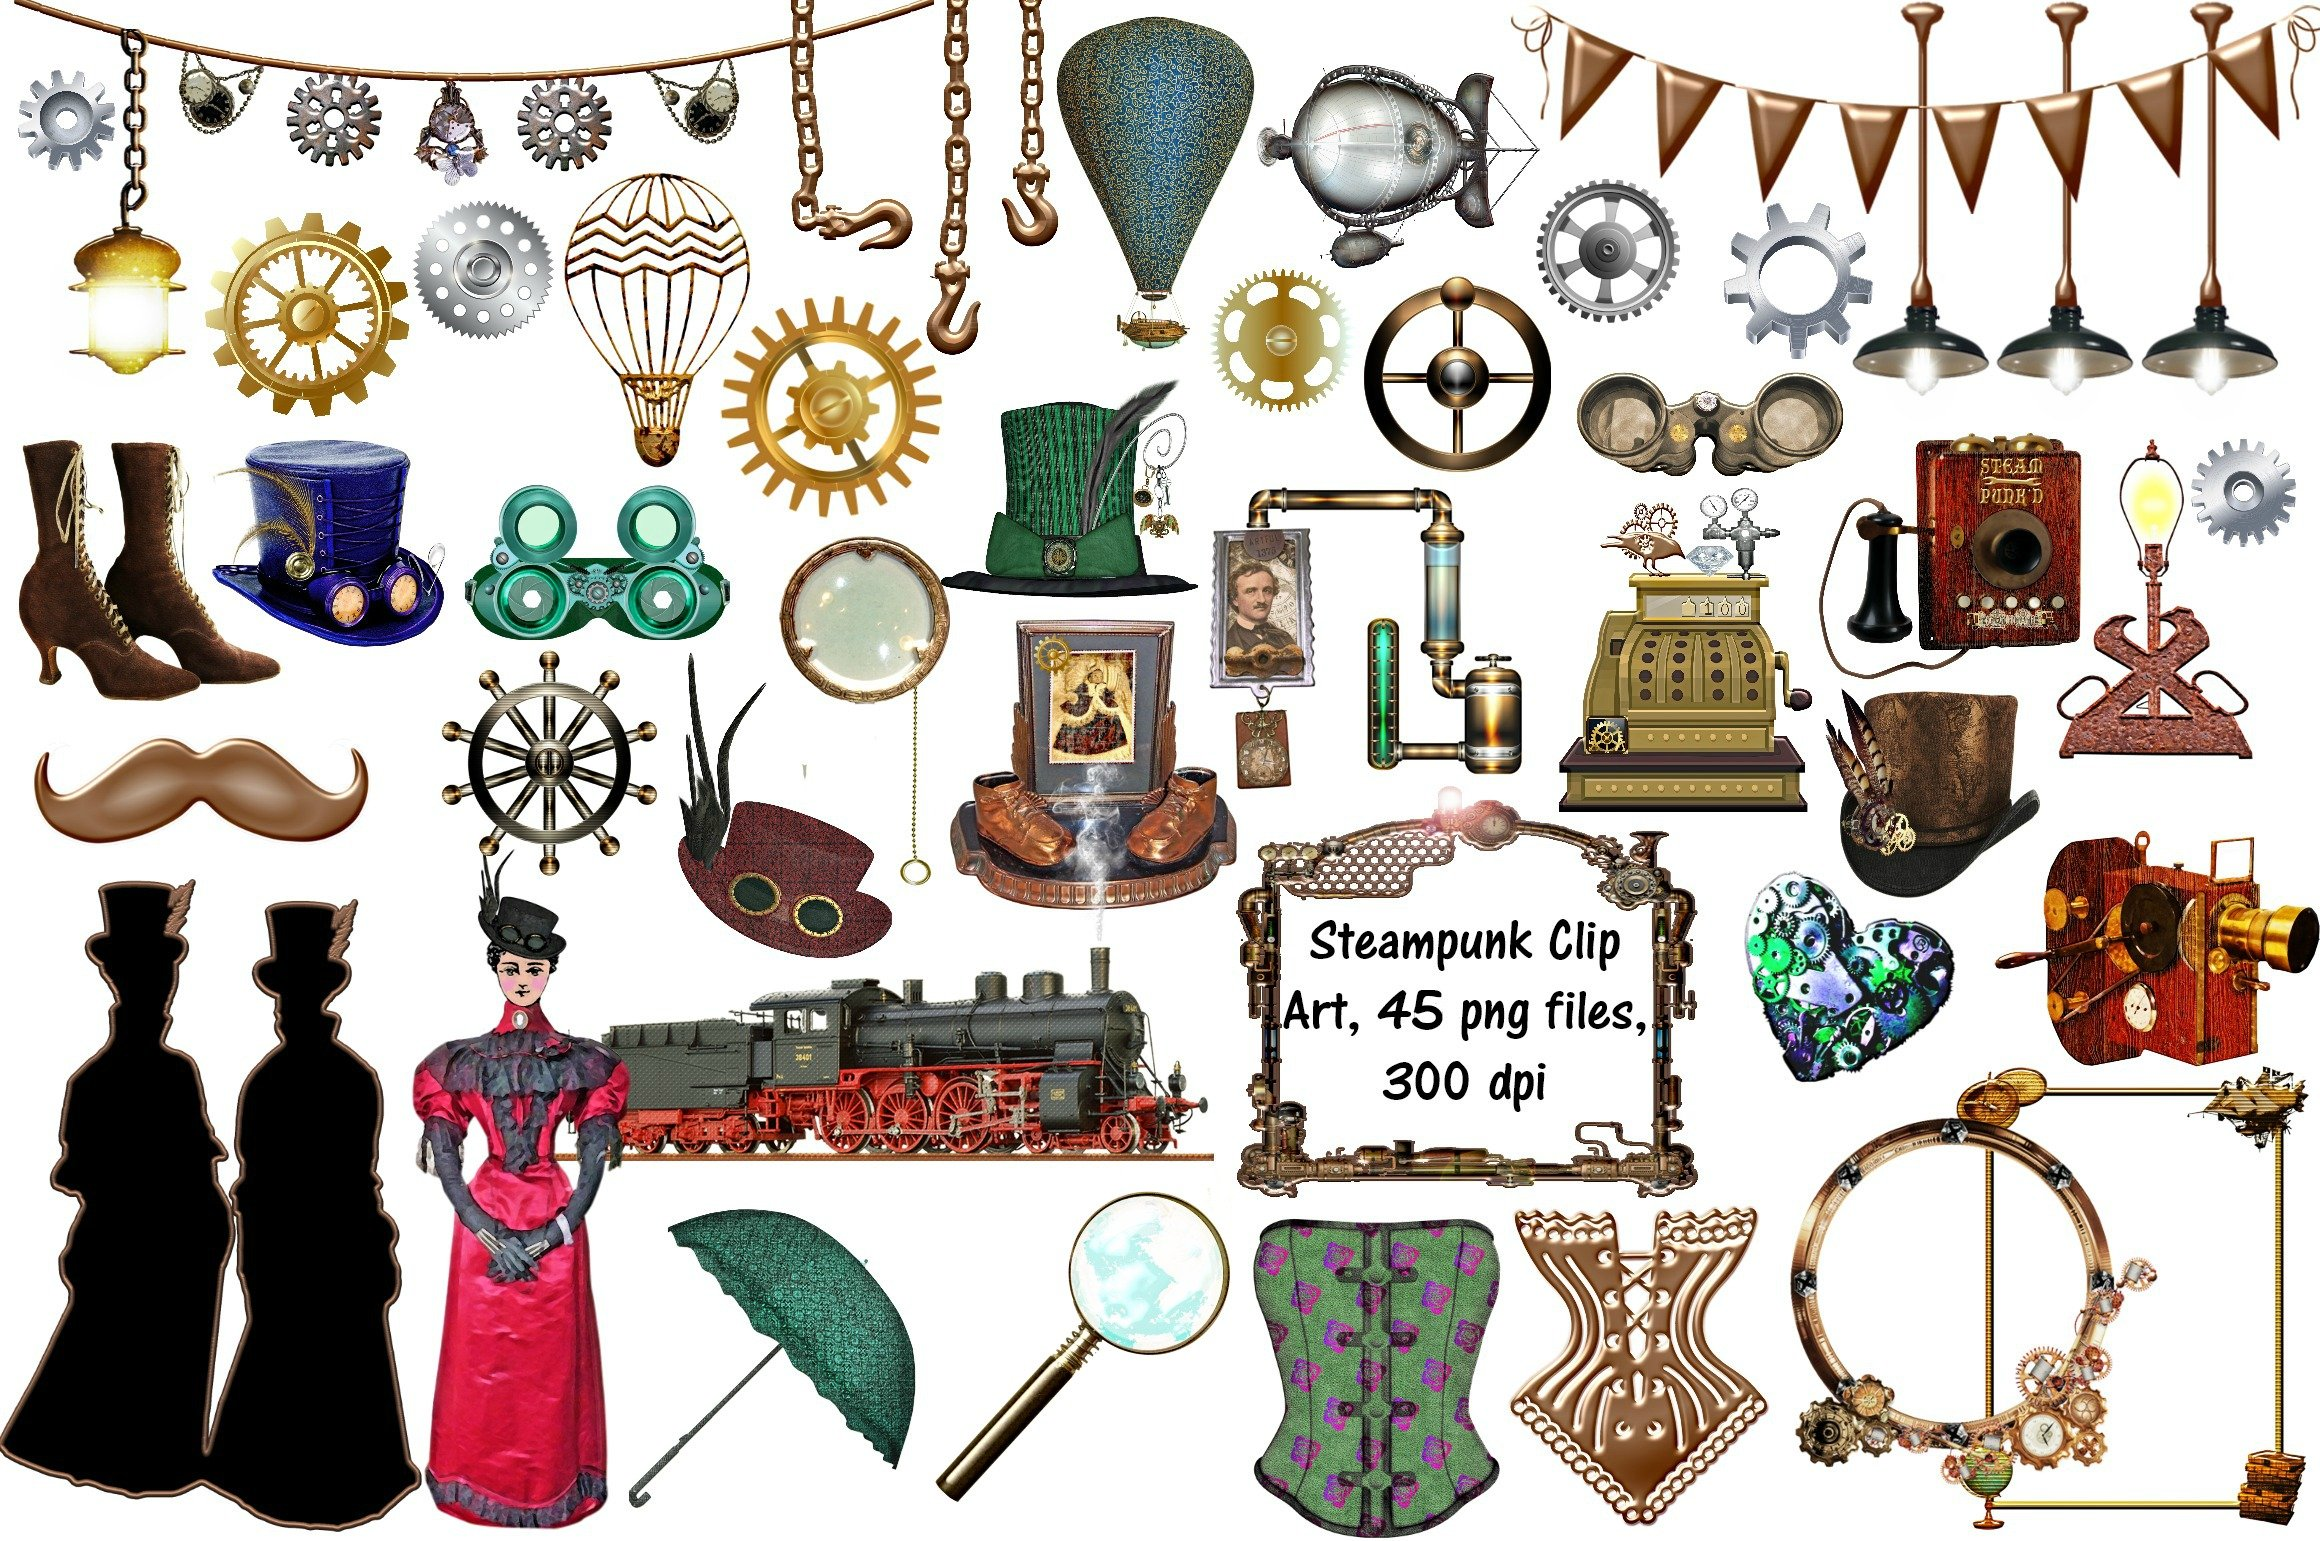 Steampunk Clip Art 45 Png Files Illustrations